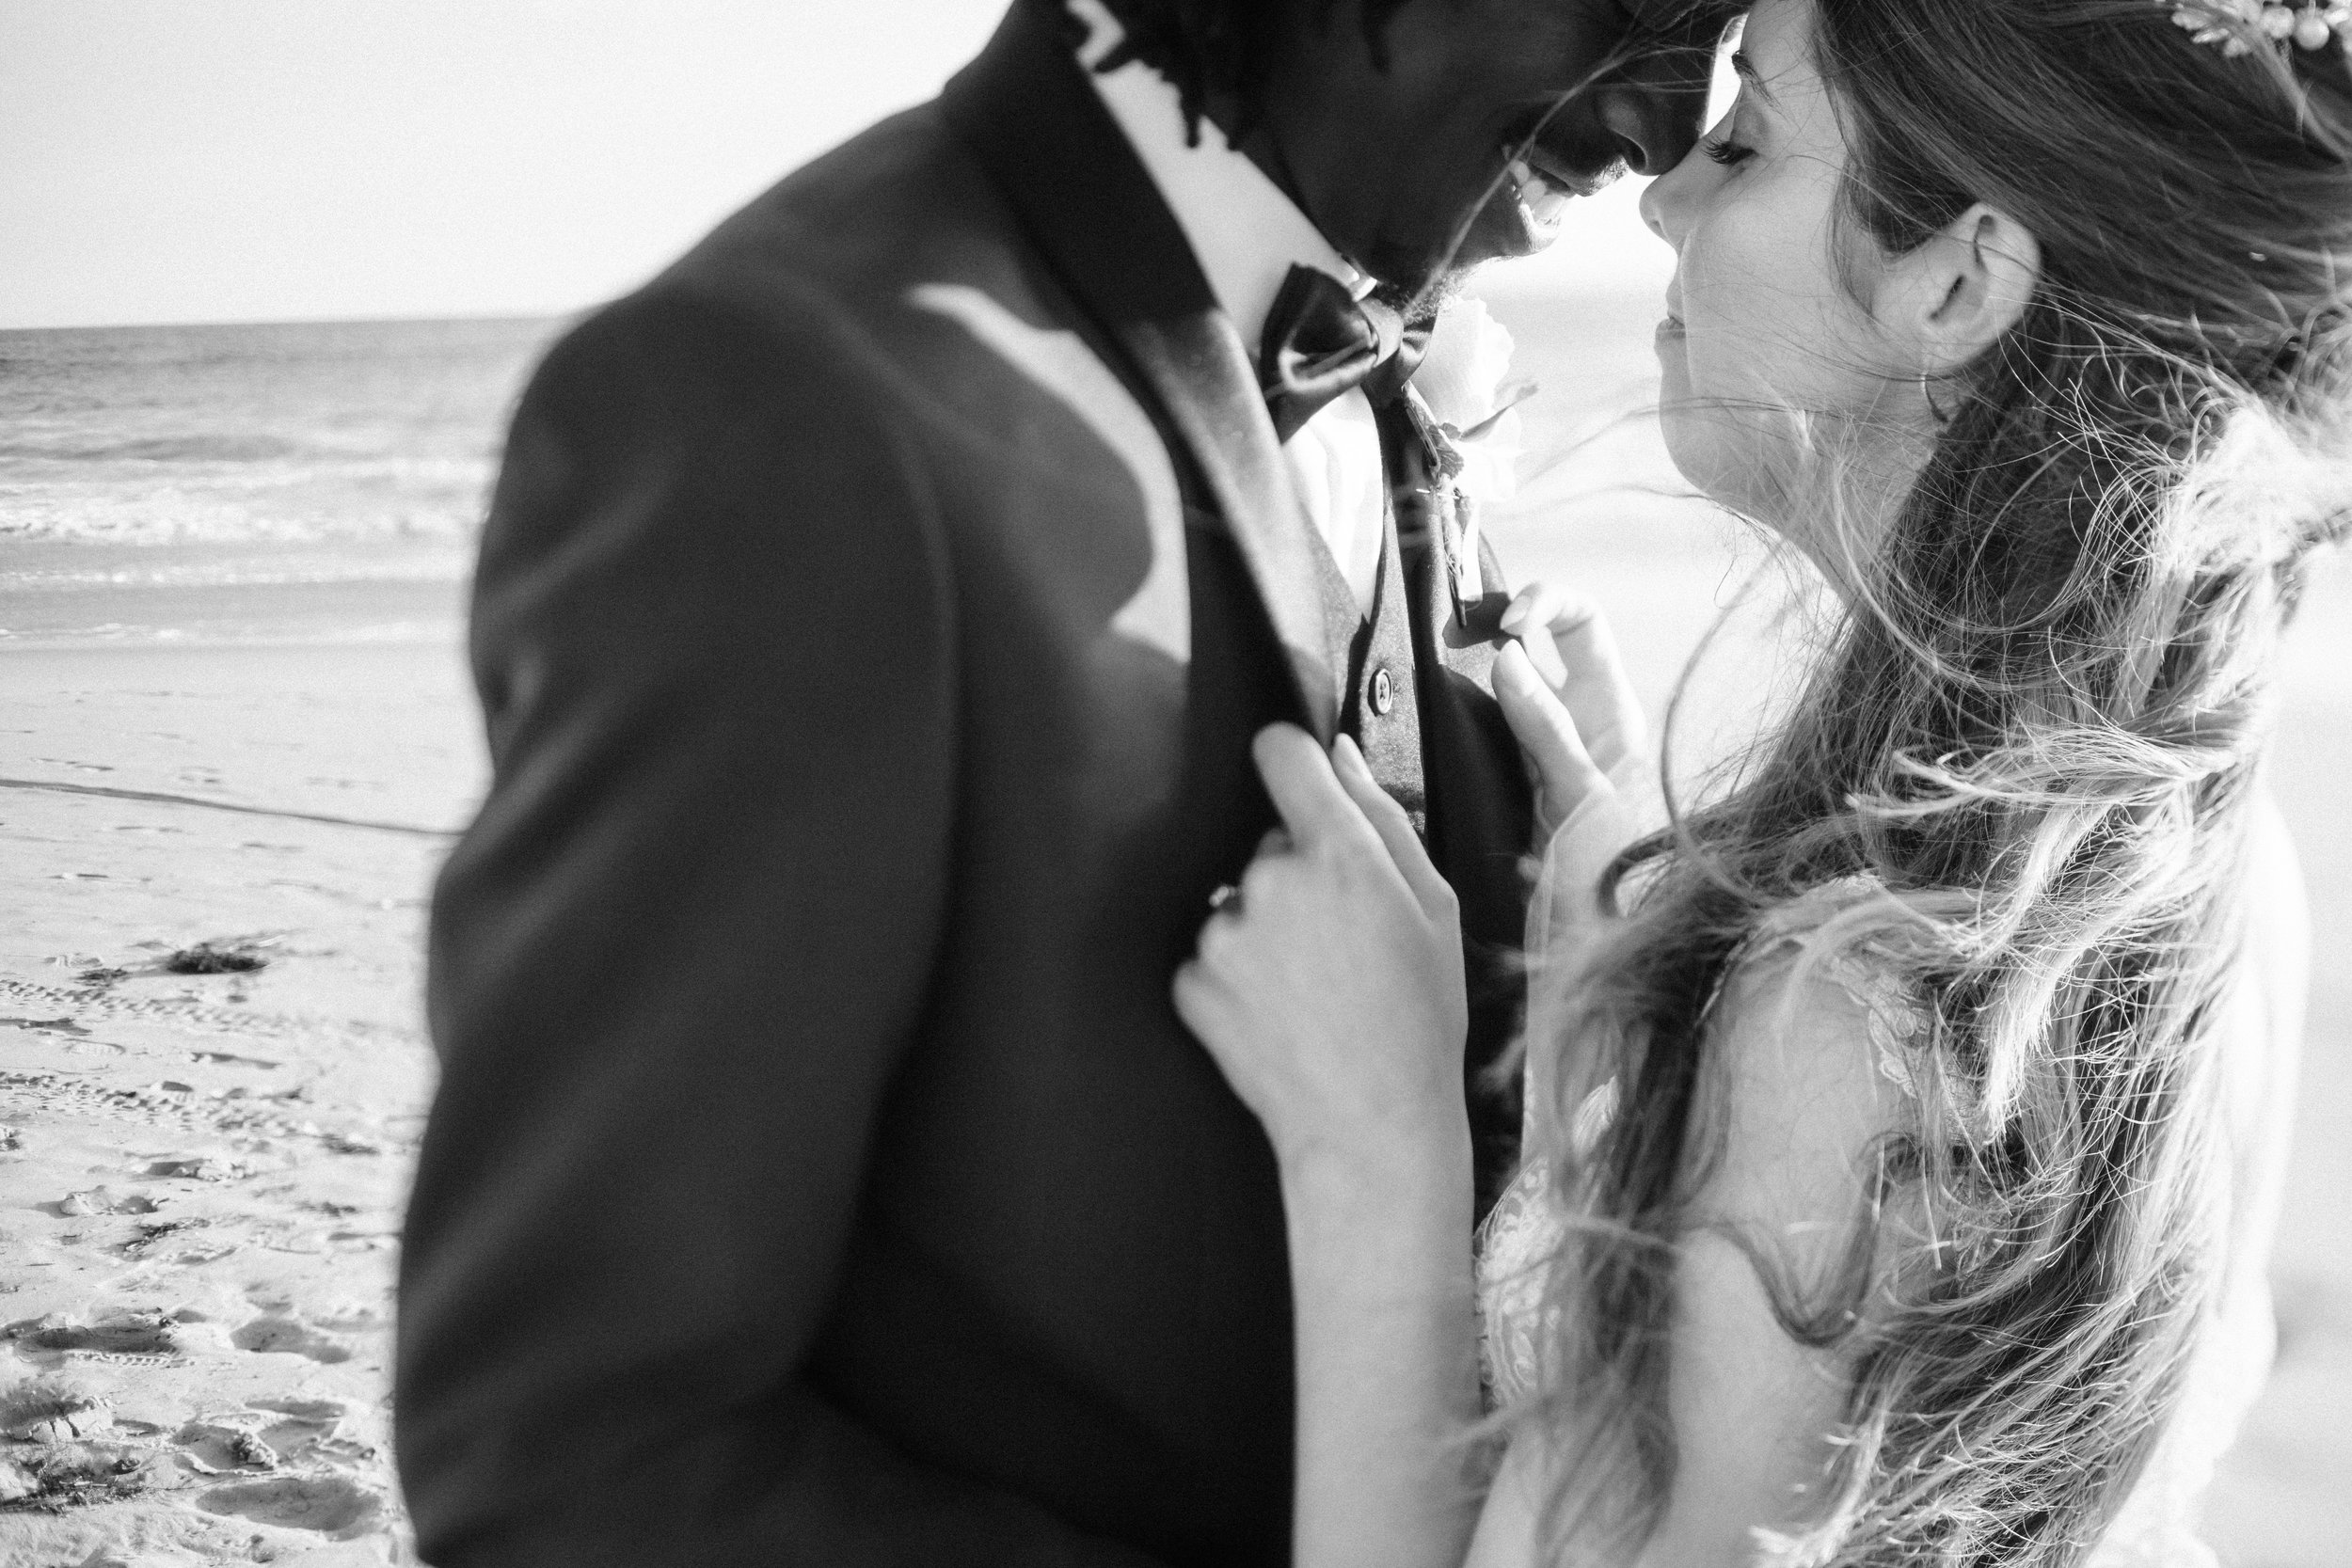 southern california laguna beach salt creek beach los angeles socal boho bay area akland san francisco engagement wedding nontraditional fun creative eclectic photographer magic-898.jpg